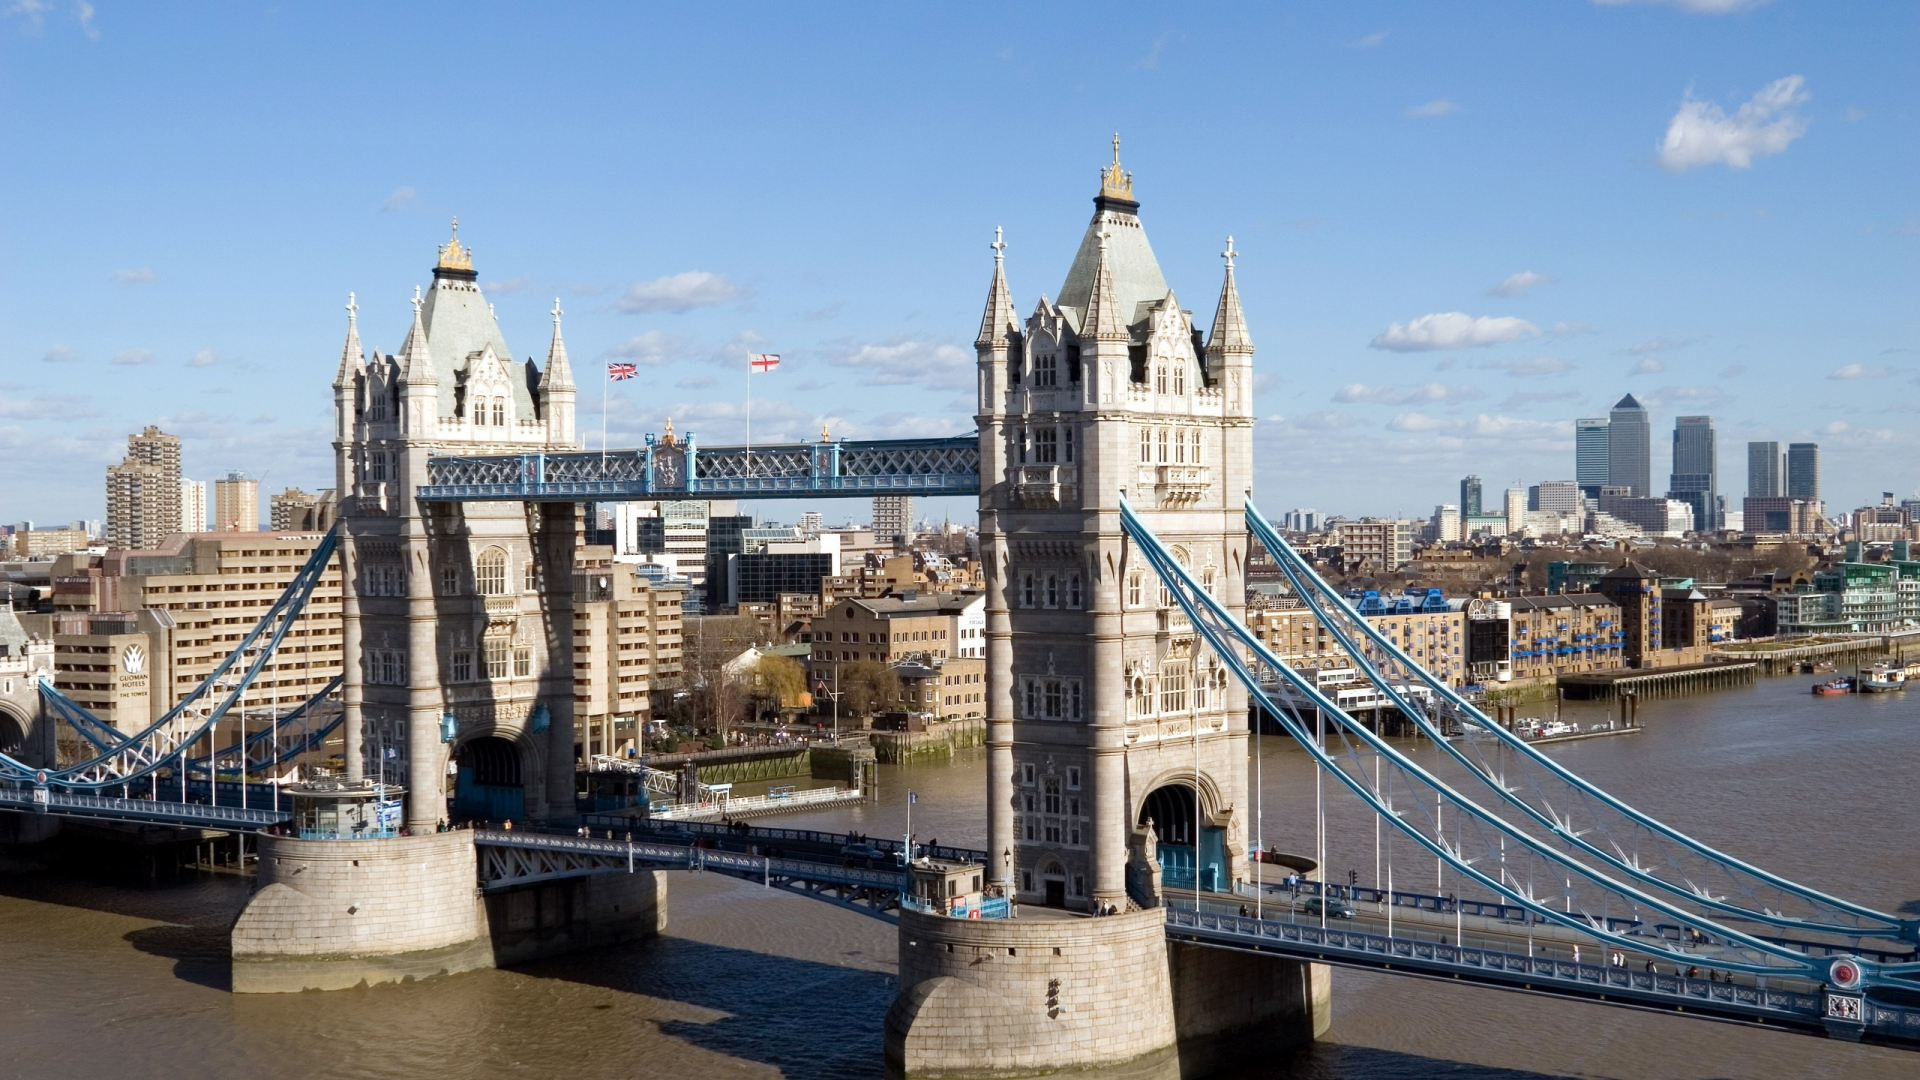 Download Wallpaper 1920x1080 River London Bridge Day Top View Full HD 1080p Background